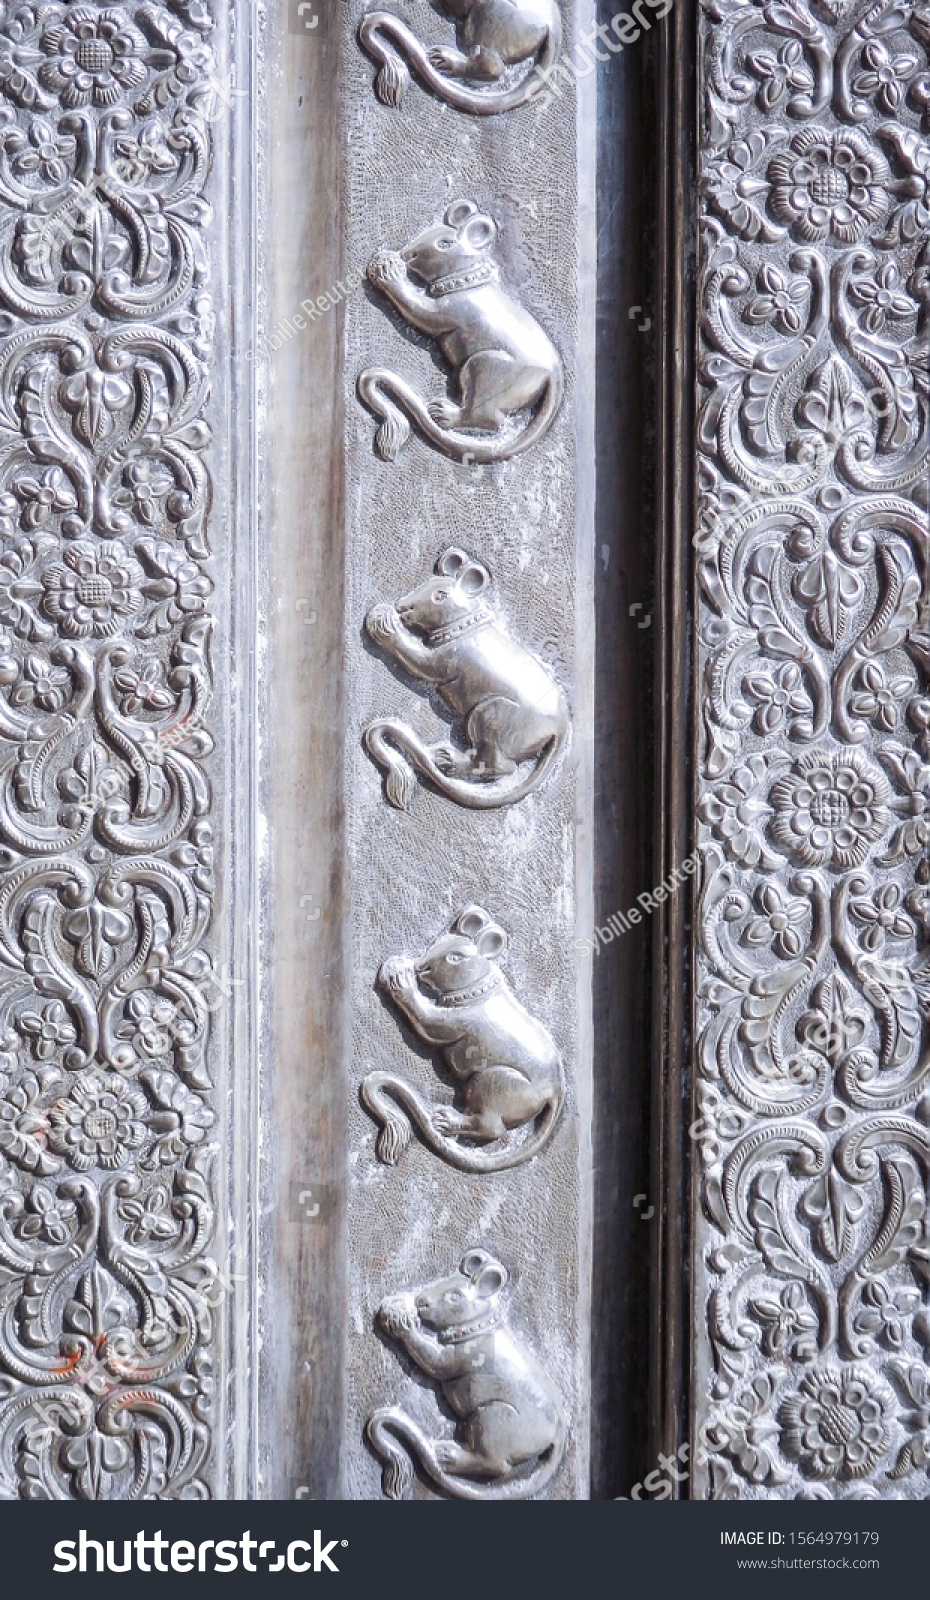 stock-photo-detail-of-the-rat-ornaments-